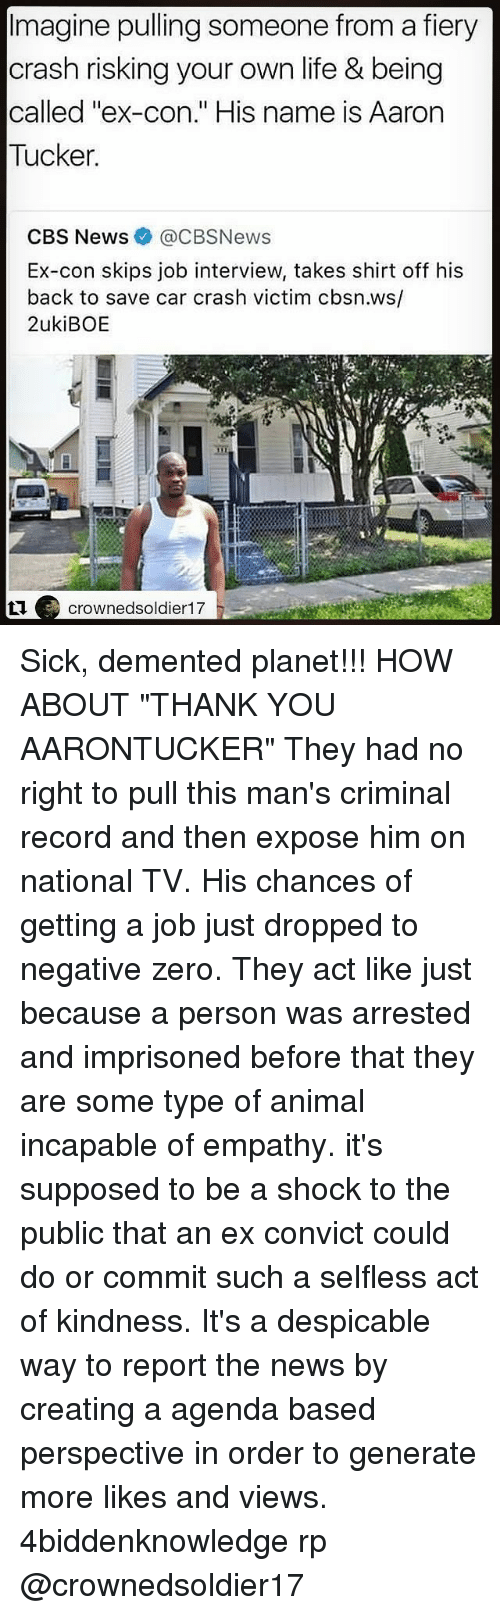 """Job Interview, Life, and Memes: Imagine pulling someone from a fiery  crash risking your own life & being  called """"ex-con."""" His name is Aarorn  Tucker  CBS News@CBSNews  Ex-con skips job interview, takes shirt off his  back to save car crash victim cbsn.ws/  2ukiBOE  crownedsoldier17 Sick, demented planet!!! HOW ABOUT """"THANK YOU AARONTUCKER"""" They had no right to pull this man's criminal record and then expose him on national TV. His chances of getting a job just dropped to negative zero. They act like just because a person was arrested and imprisoned before that they are some type of animal incapable of empathy. it's supposed to be a shock to the public that an ex convict could do or commit such a selfless act of kindness. It's a despicable way to report the news by creating a agenda based perspective in order to generate more likes and views. 4biddenknowledge rp @crownedsoldier17"""